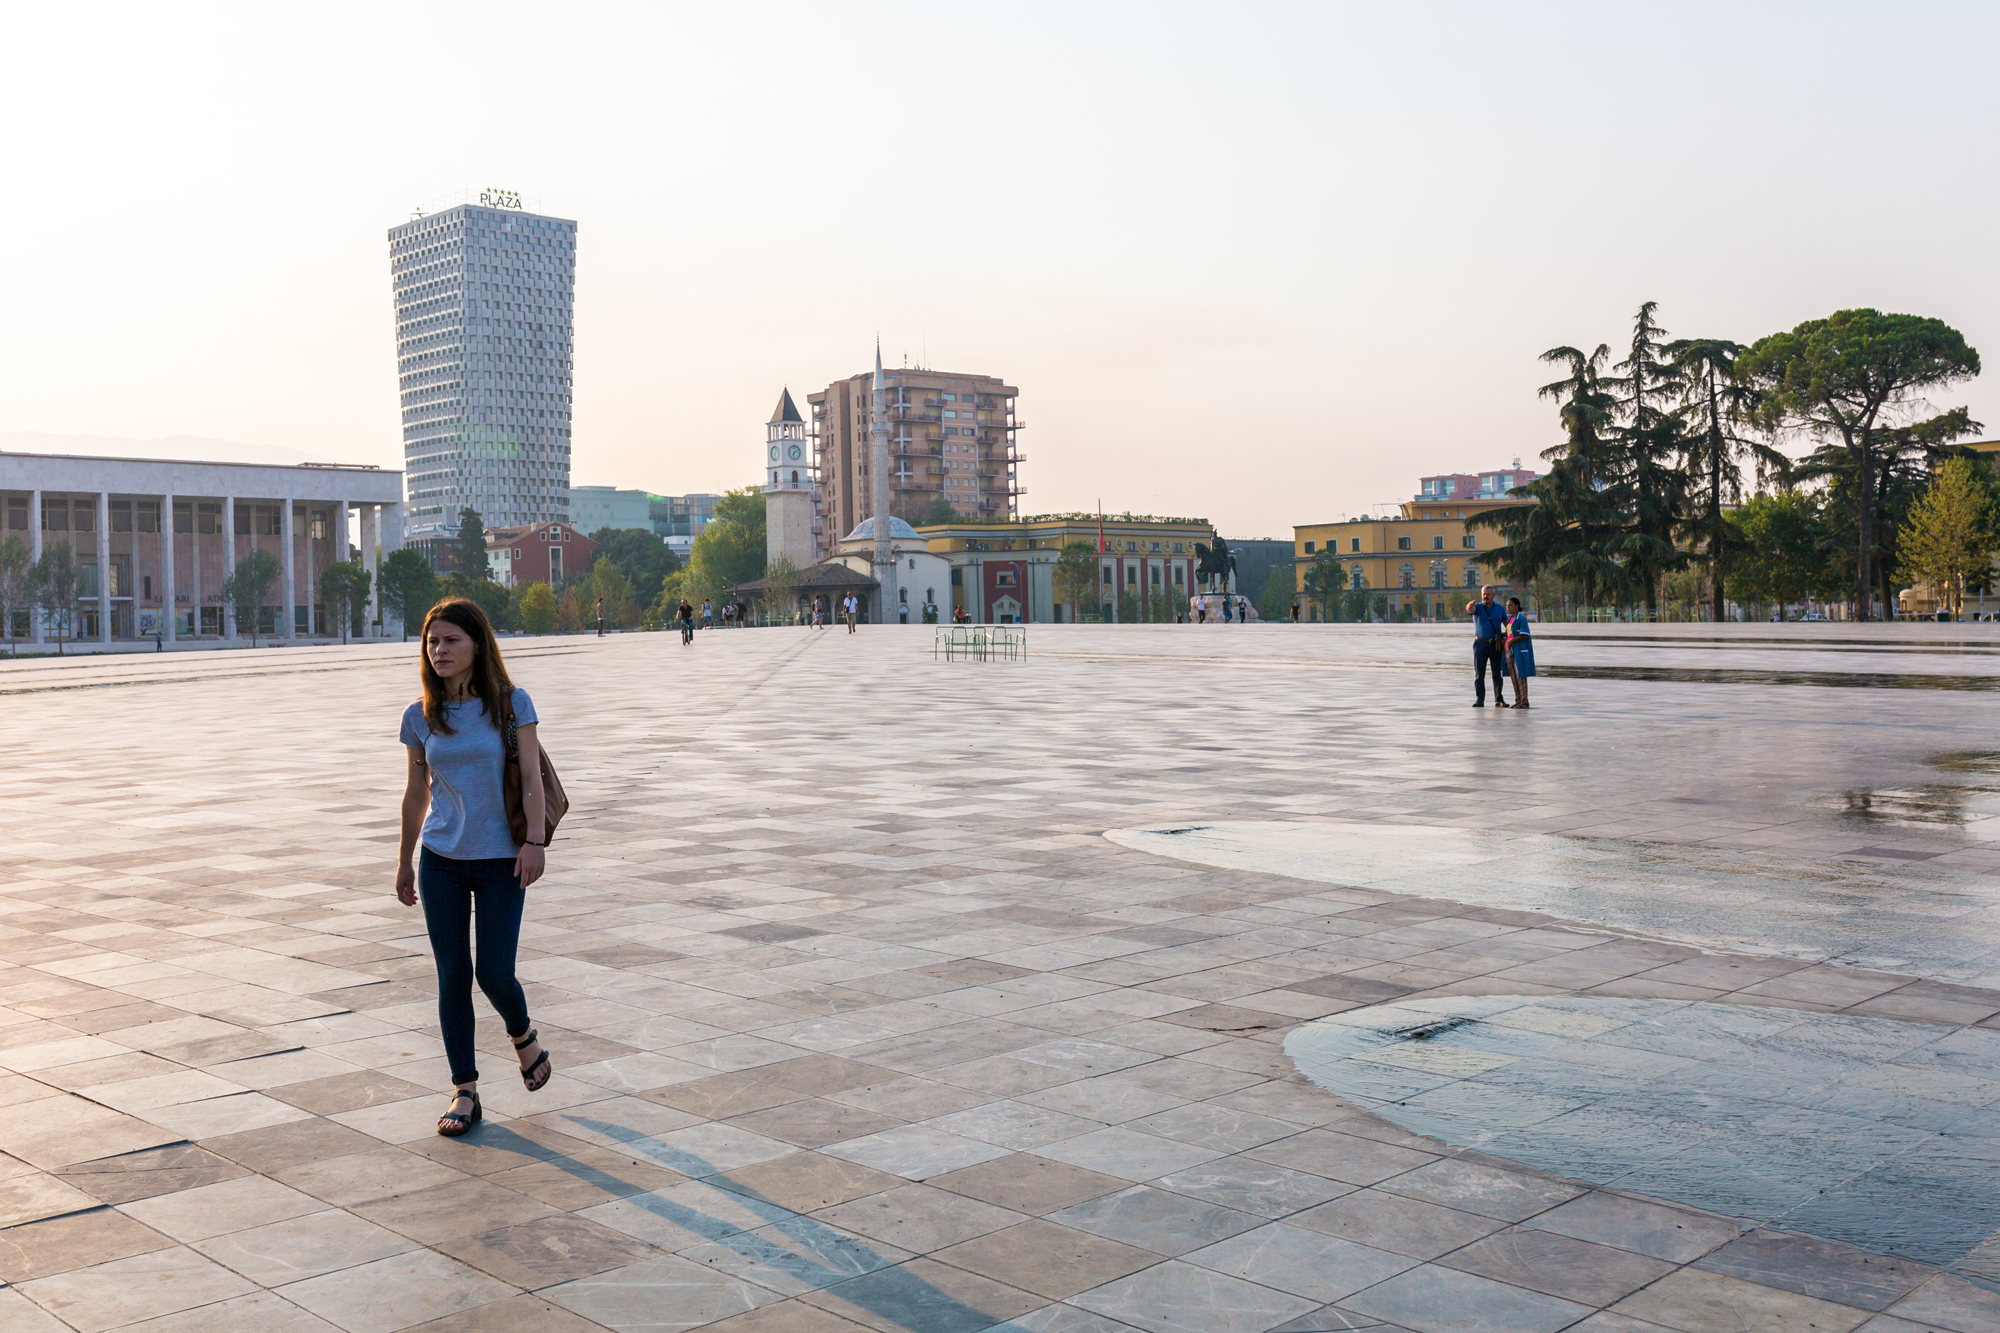 A girl walking across the main square in Tirana, Albania.